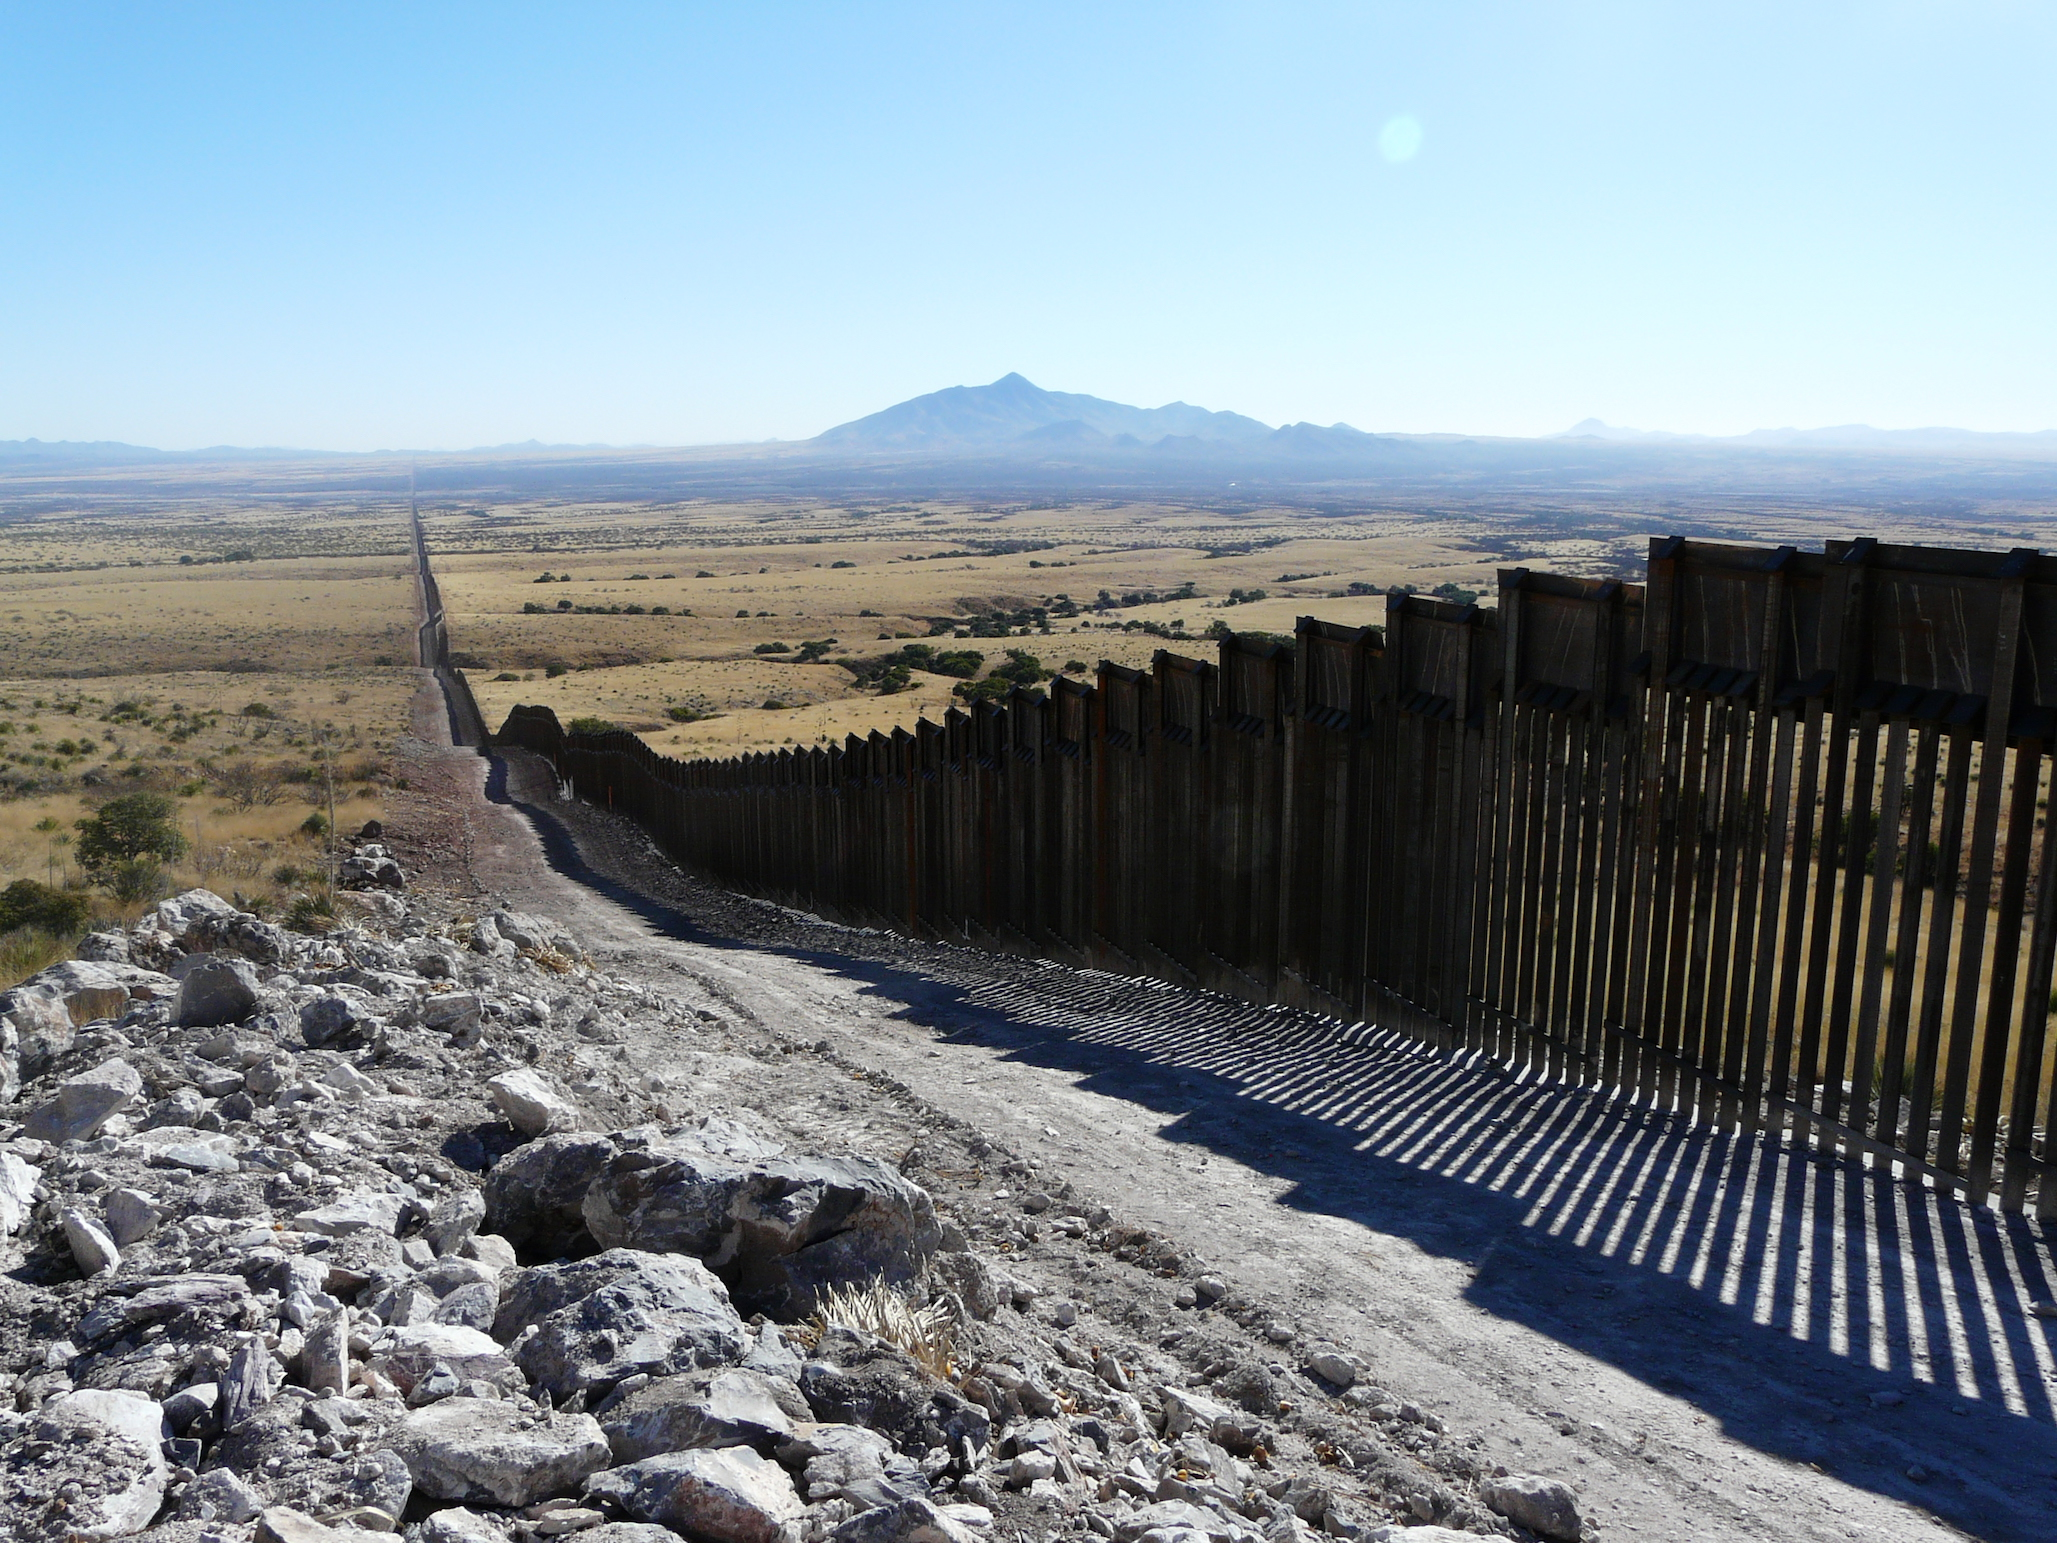 Lesley Evans Ogden has written an article addressing the potential impact that a U.S.-Mexico border wall will have on wildlife.